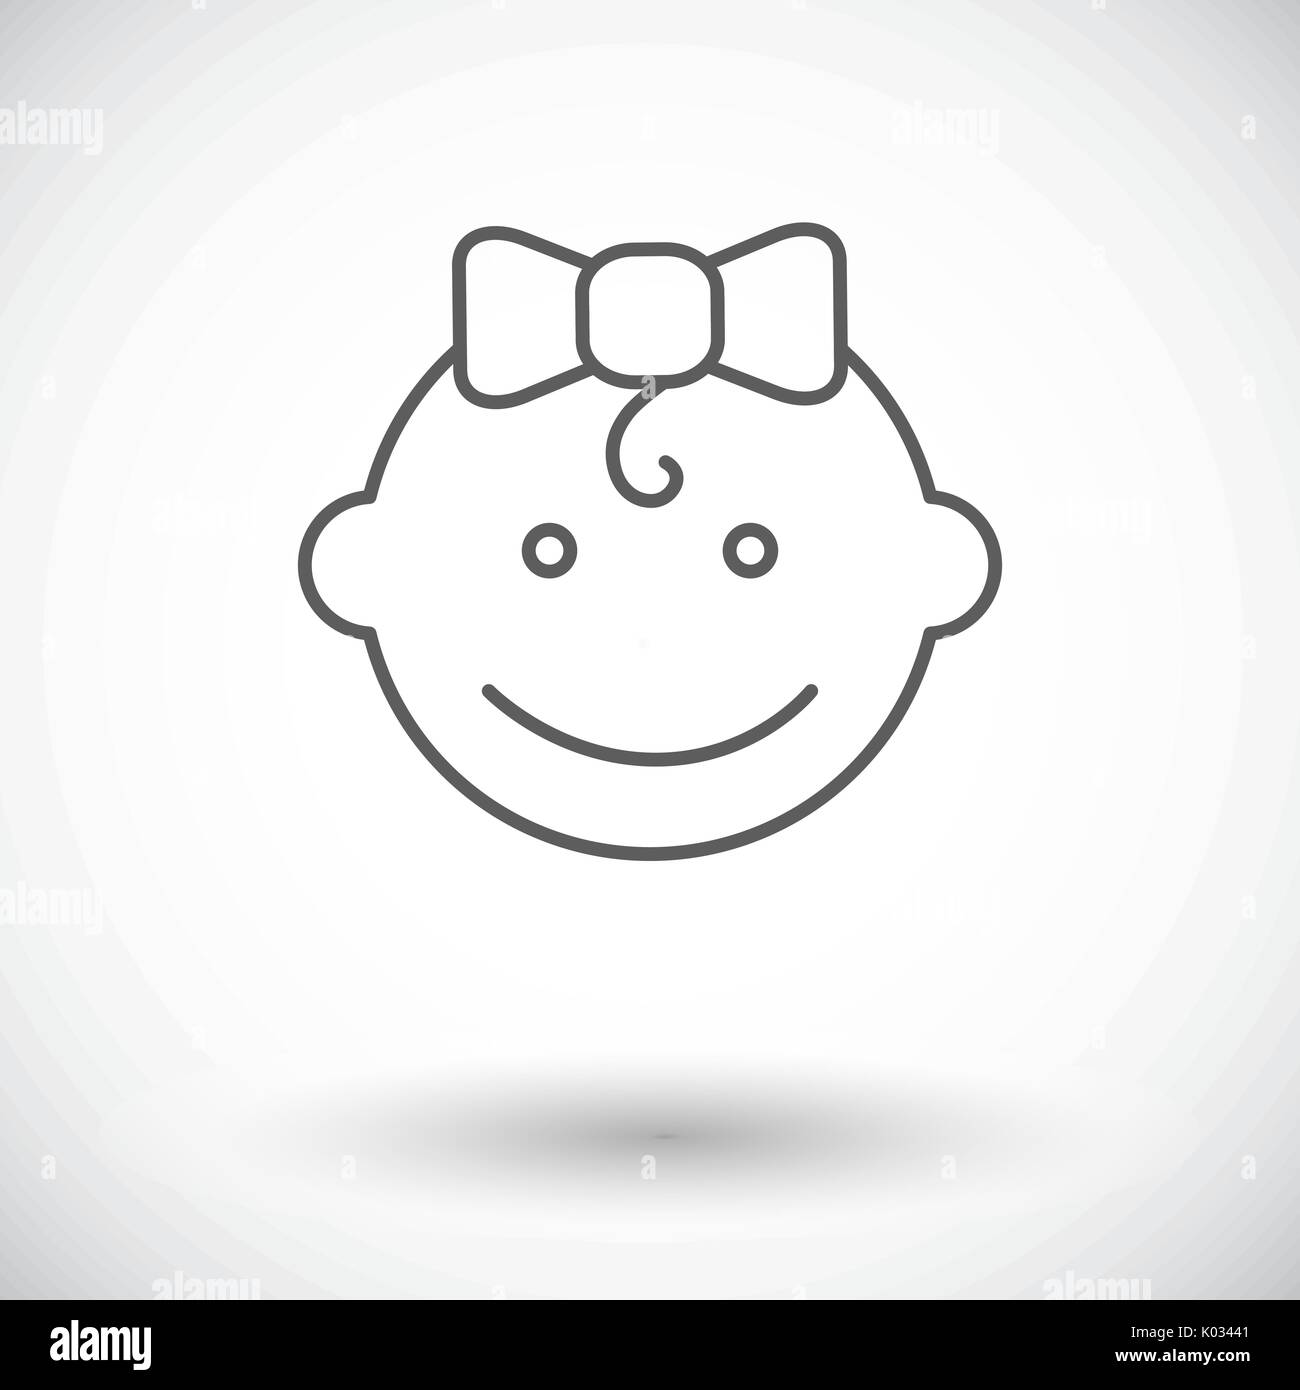 Baby girl icon. Thin line flat vector related icon for web and mobile applications. It can be used as - logo, pictogram, icon, infographic element. Ve - Stock Vector